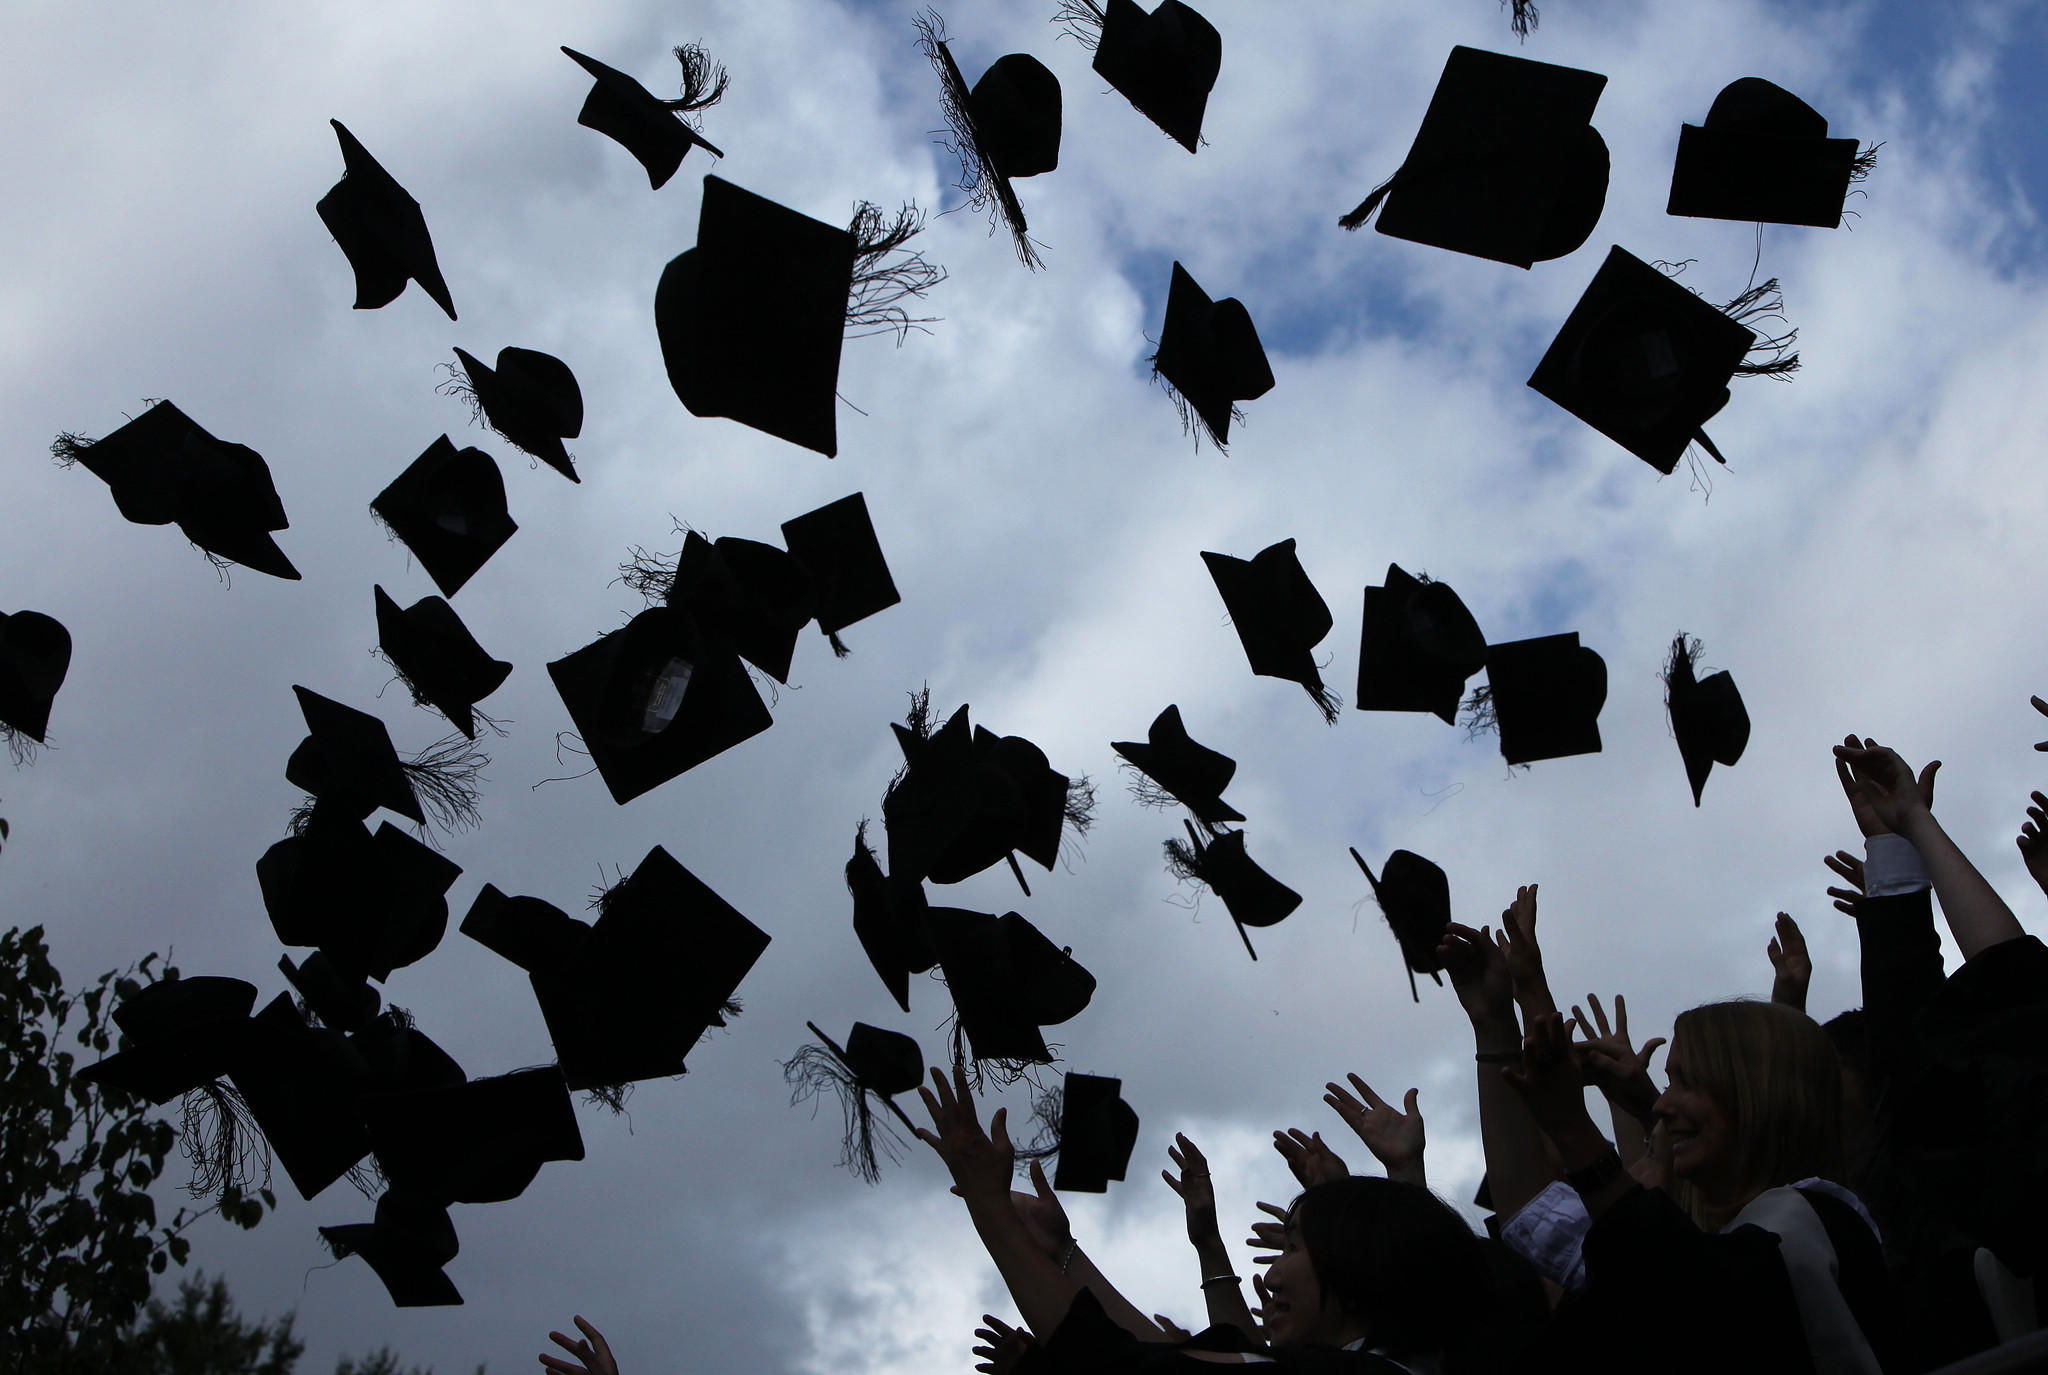 File photo shows students throwing their mortarboards in the air during their graduation.